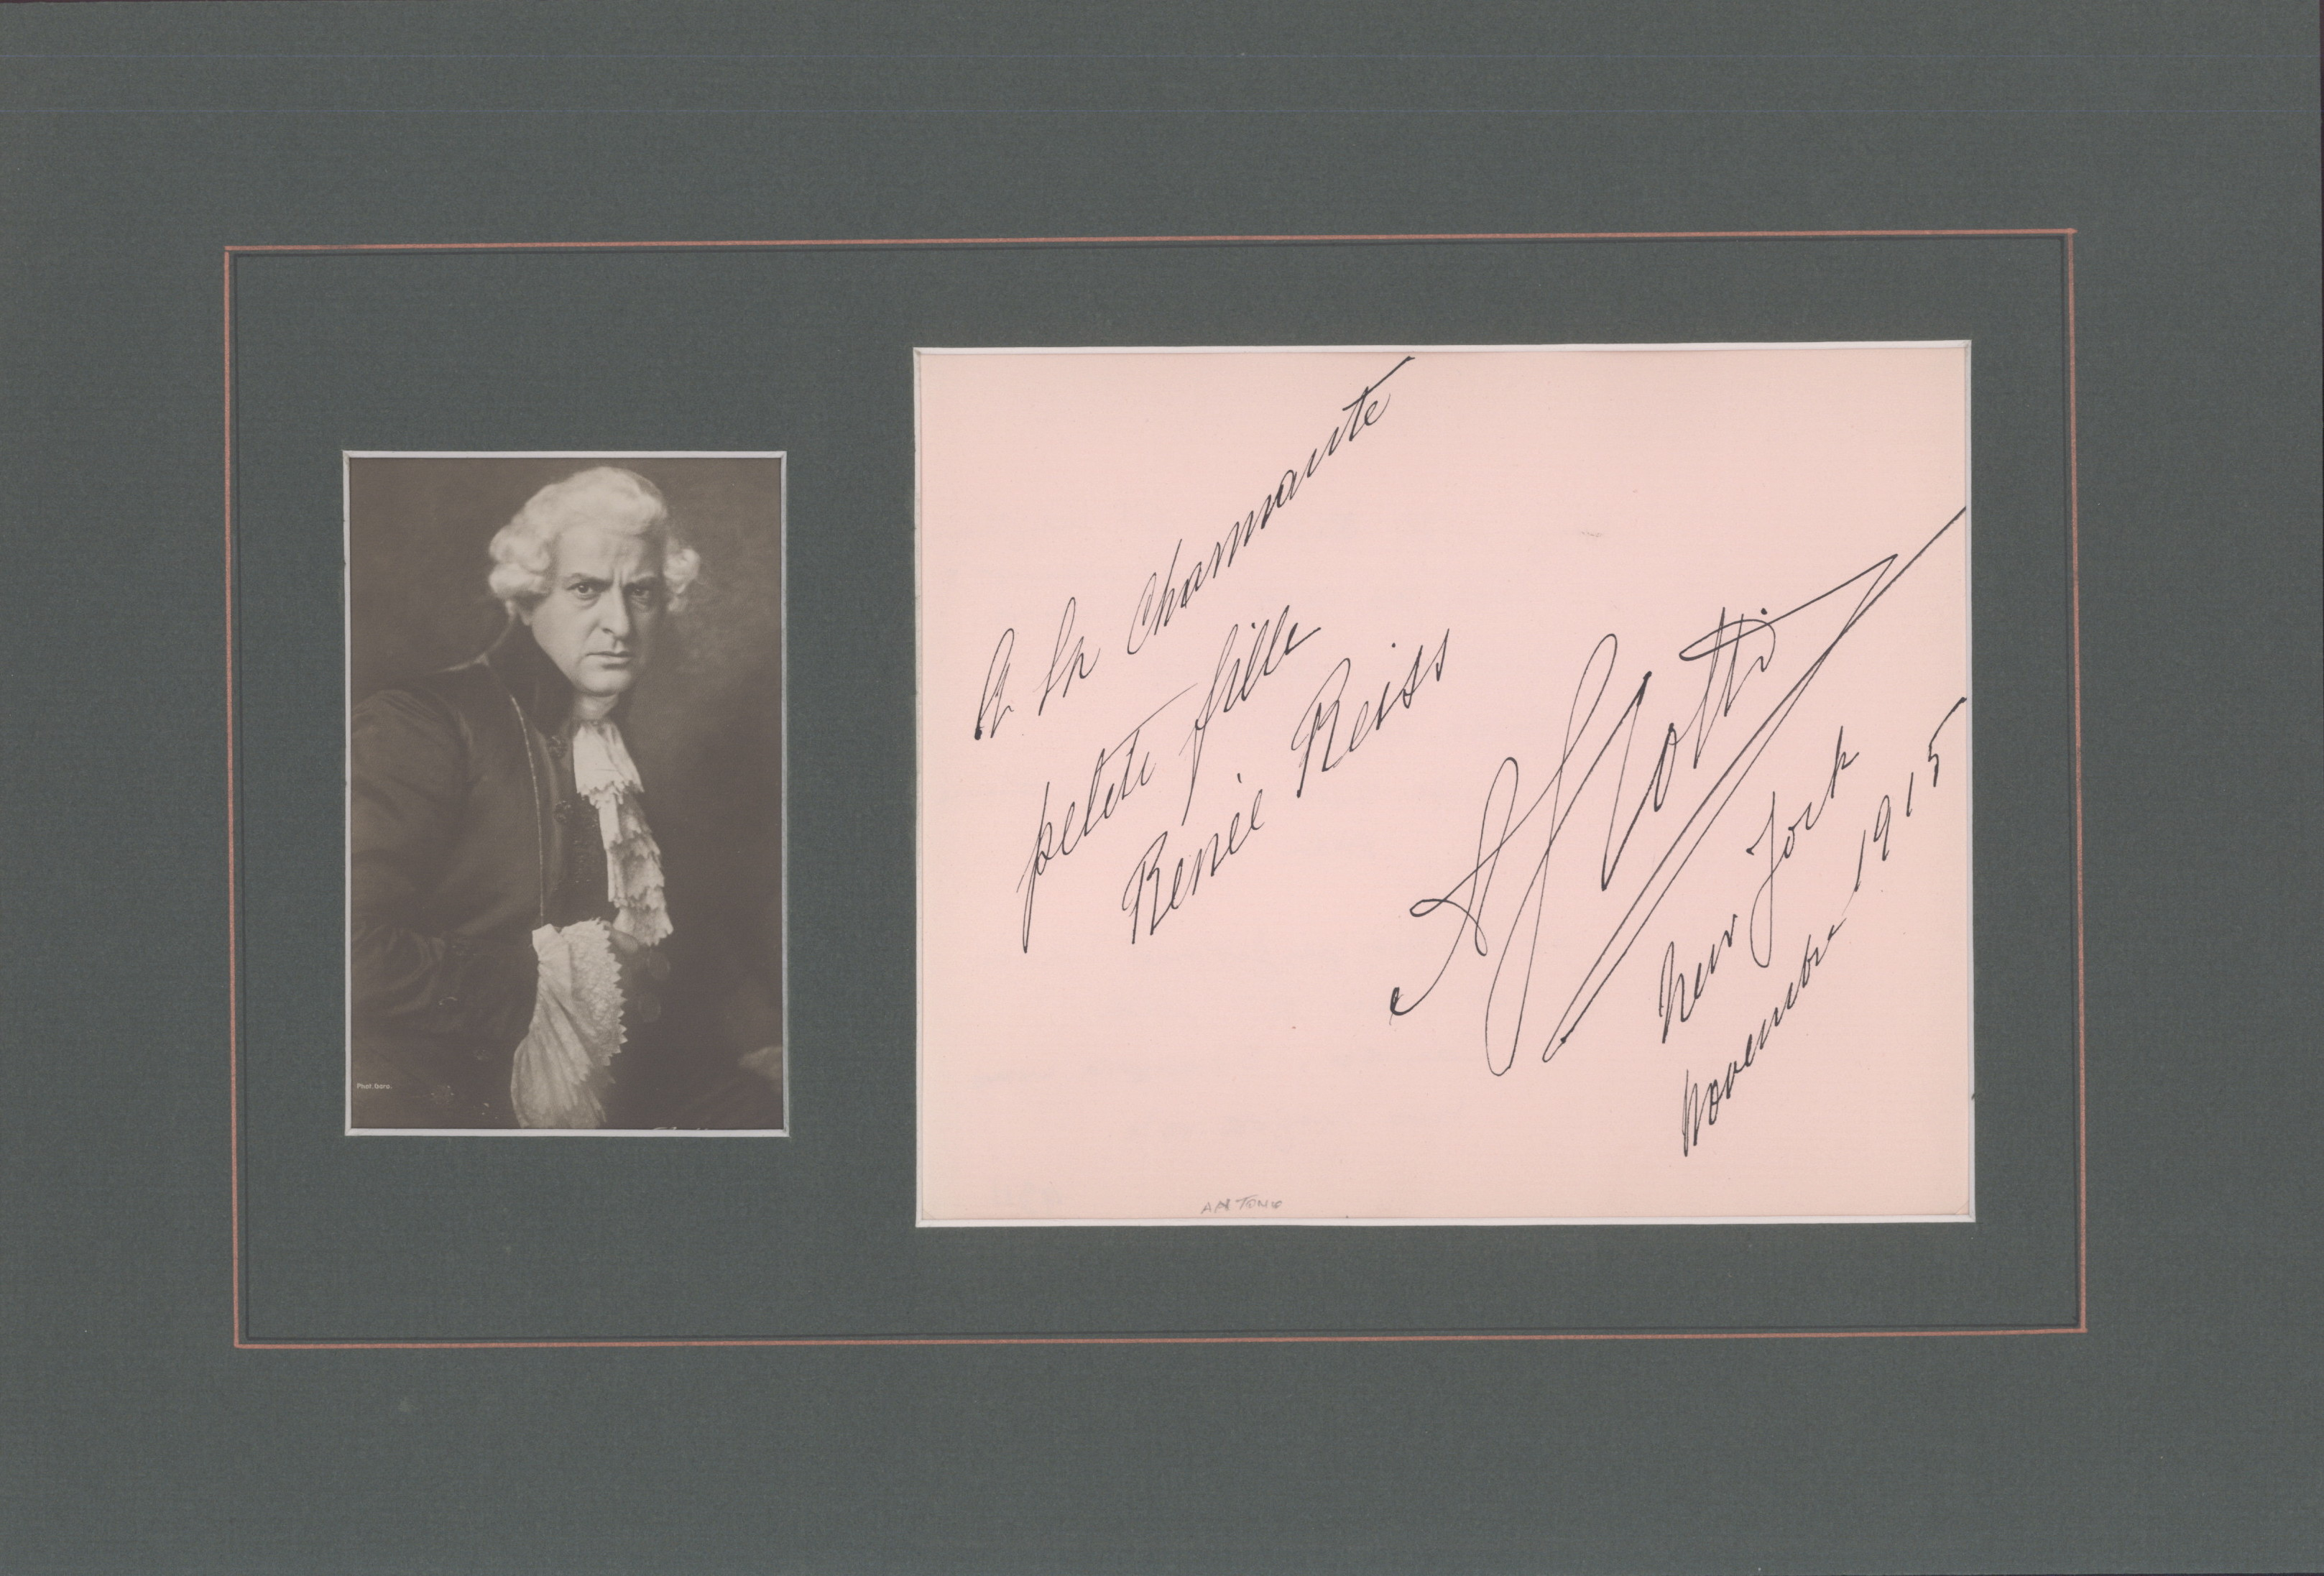 Scotti, Antonio - Ensemble With Signature & Photo As Scarpia. - (2272)